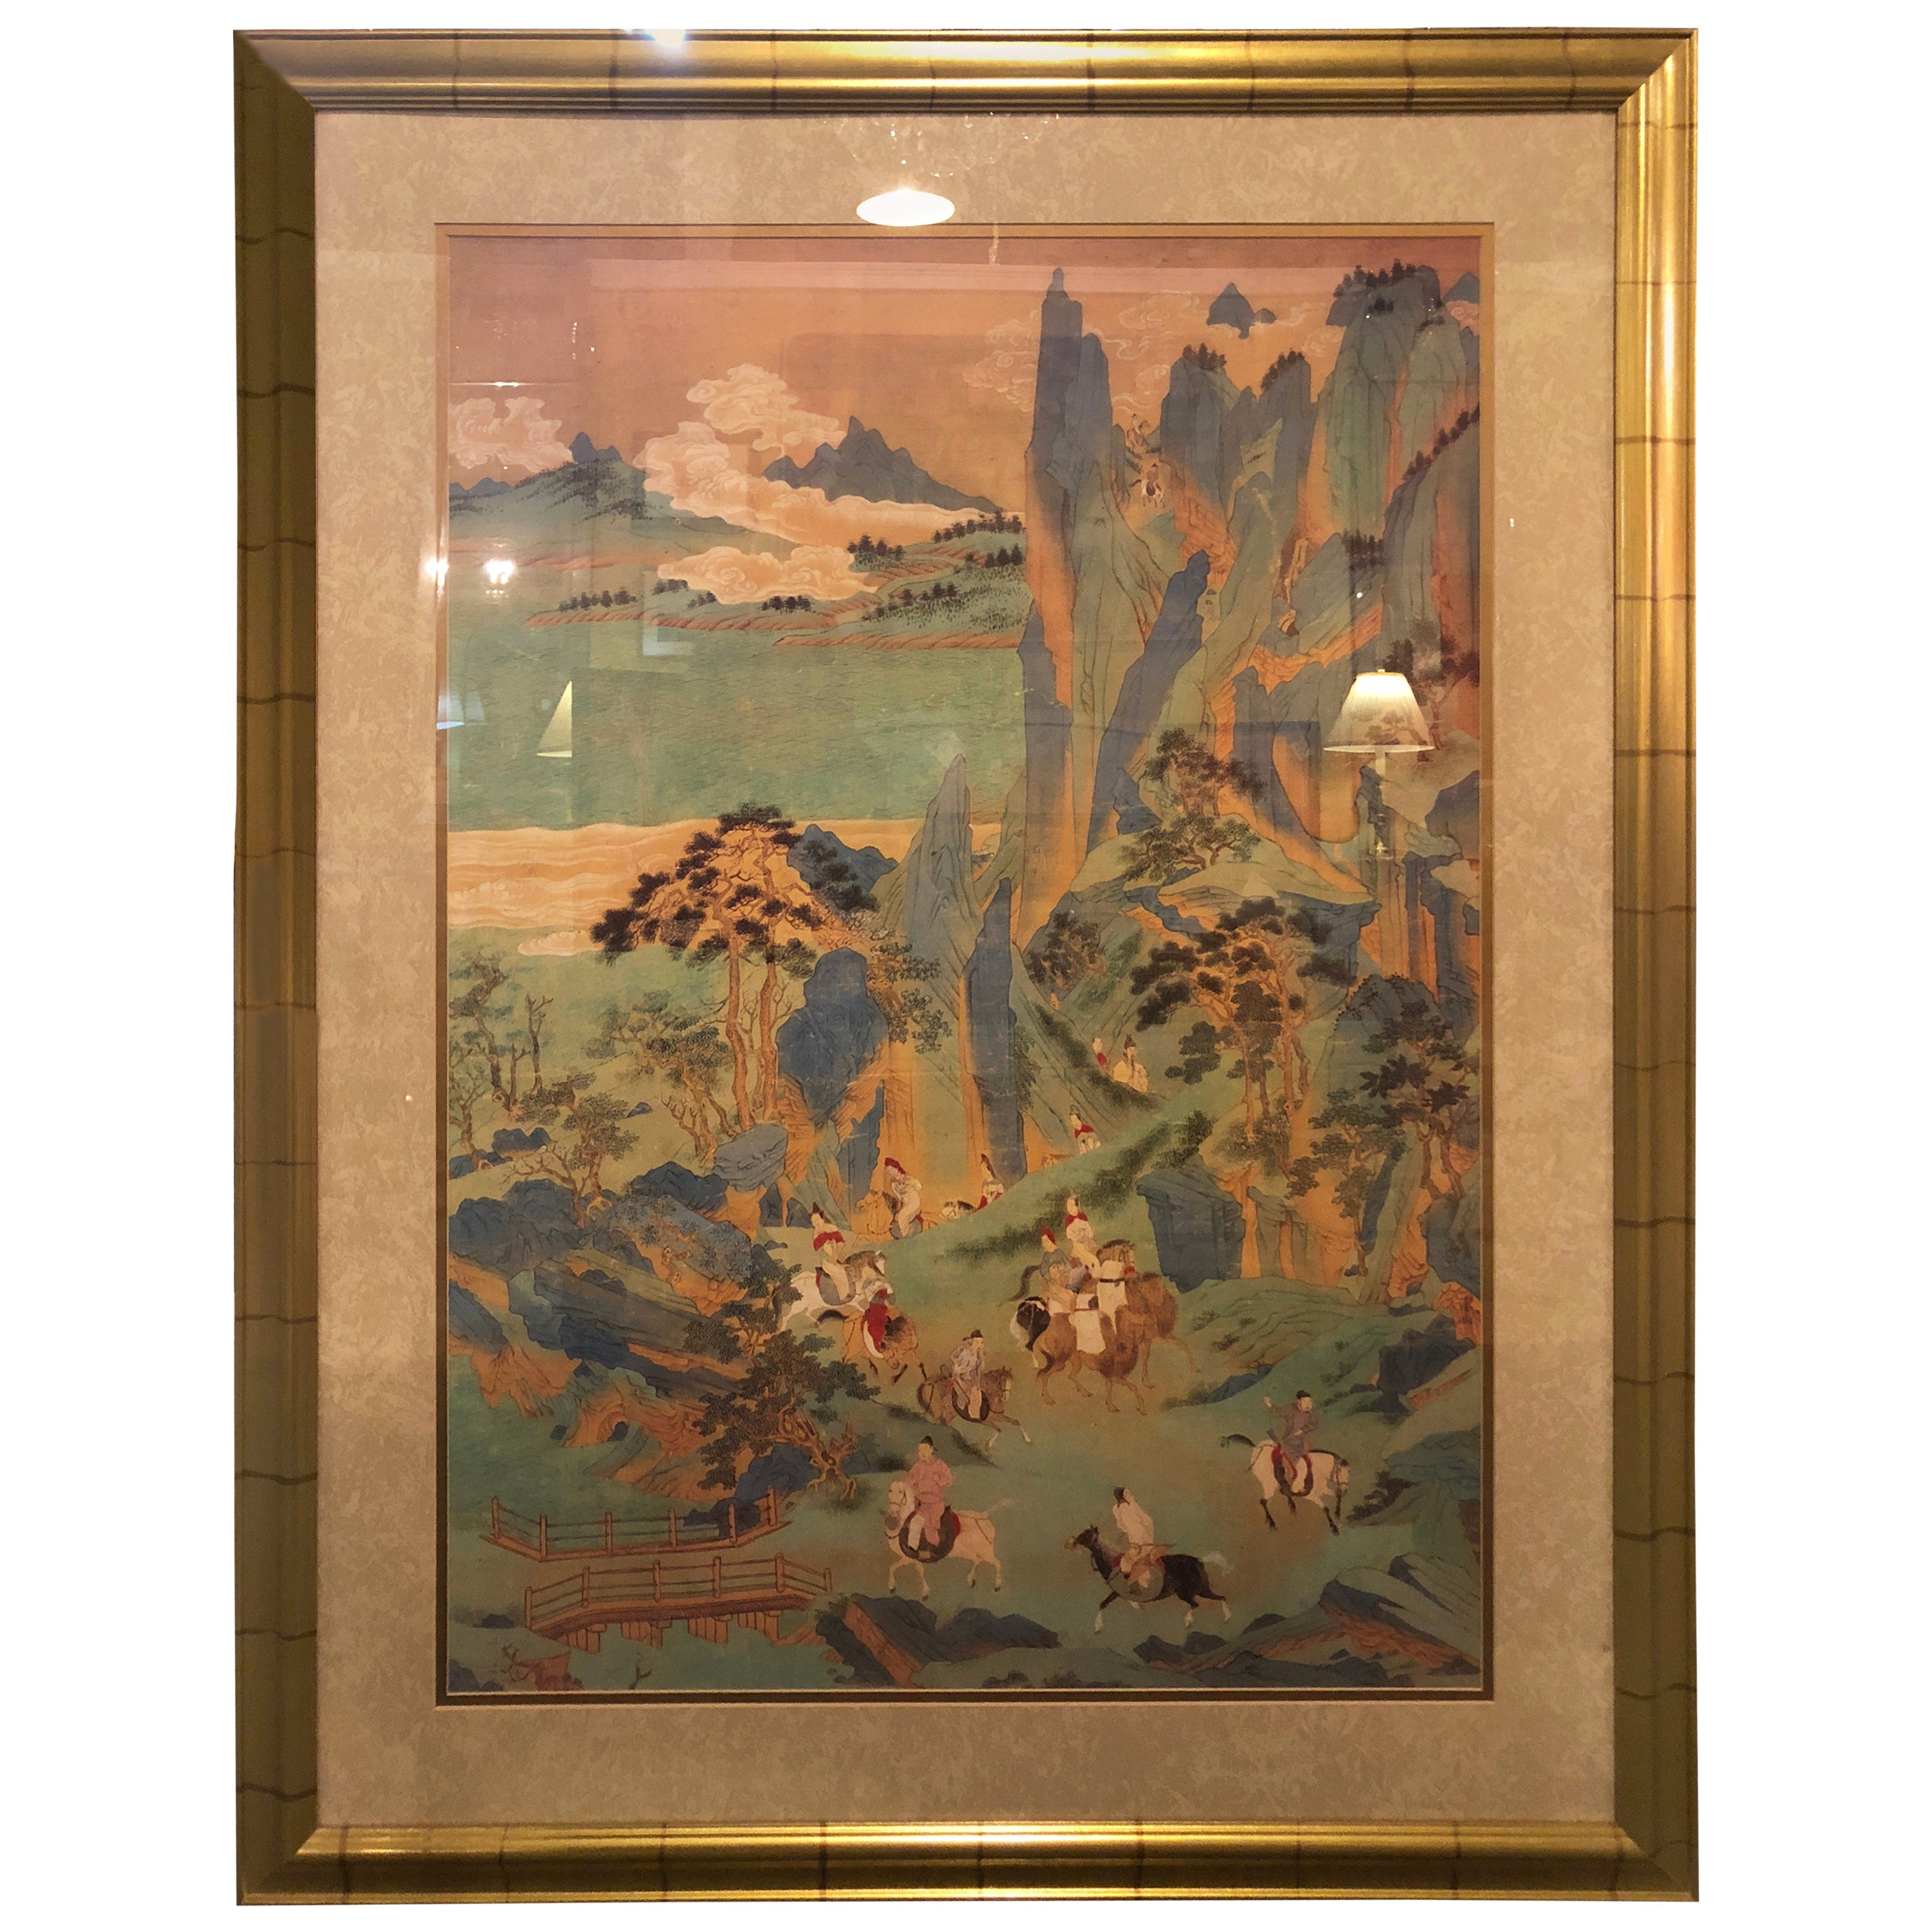 Large Asian Poster Framed and Matted in a Gilt Frame